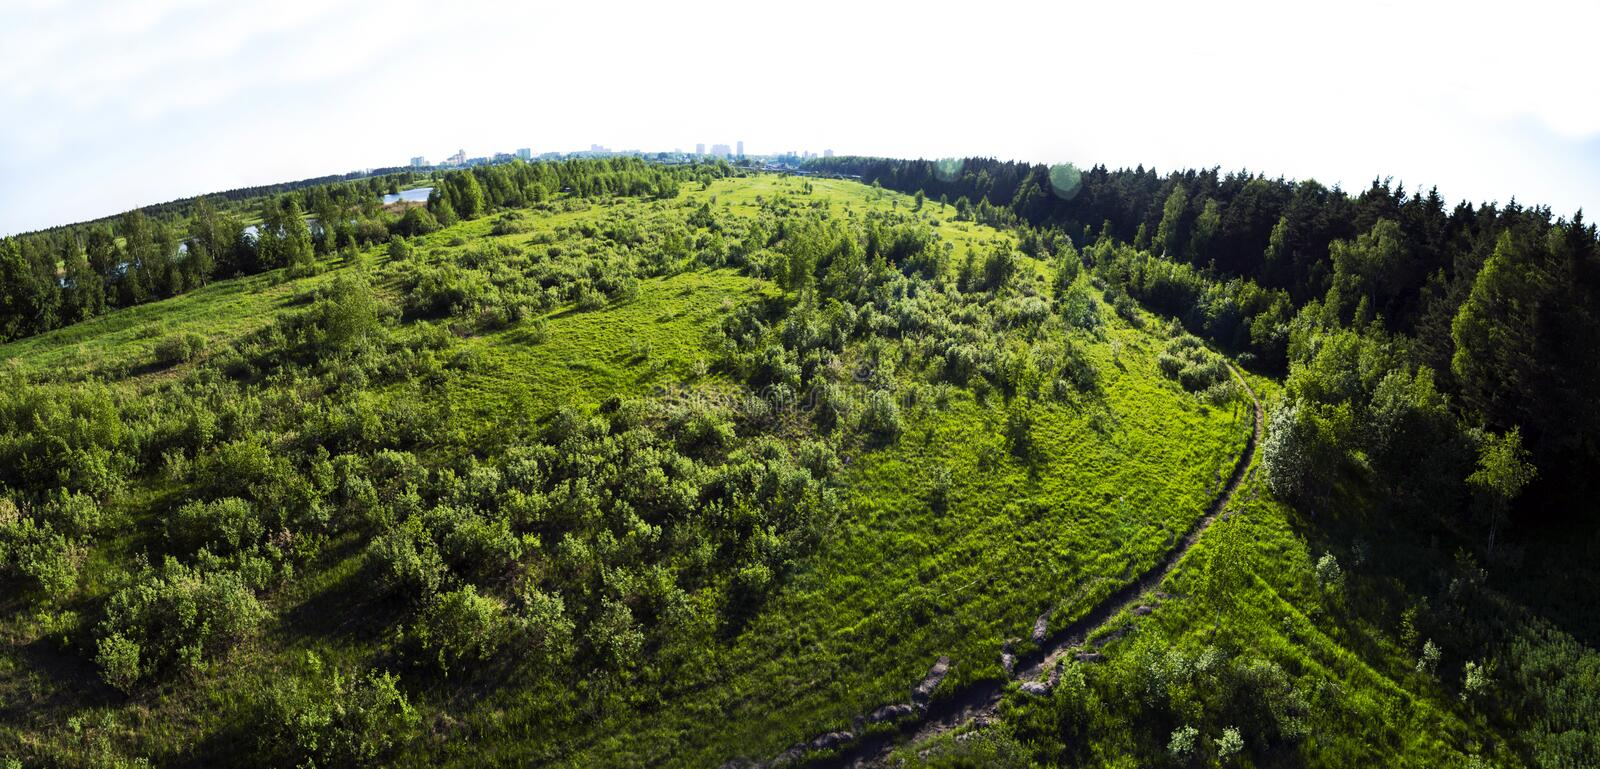 Green lawn little trees grass. Place deforestation for building construction. Nature environment top view from above royalty free stock photography